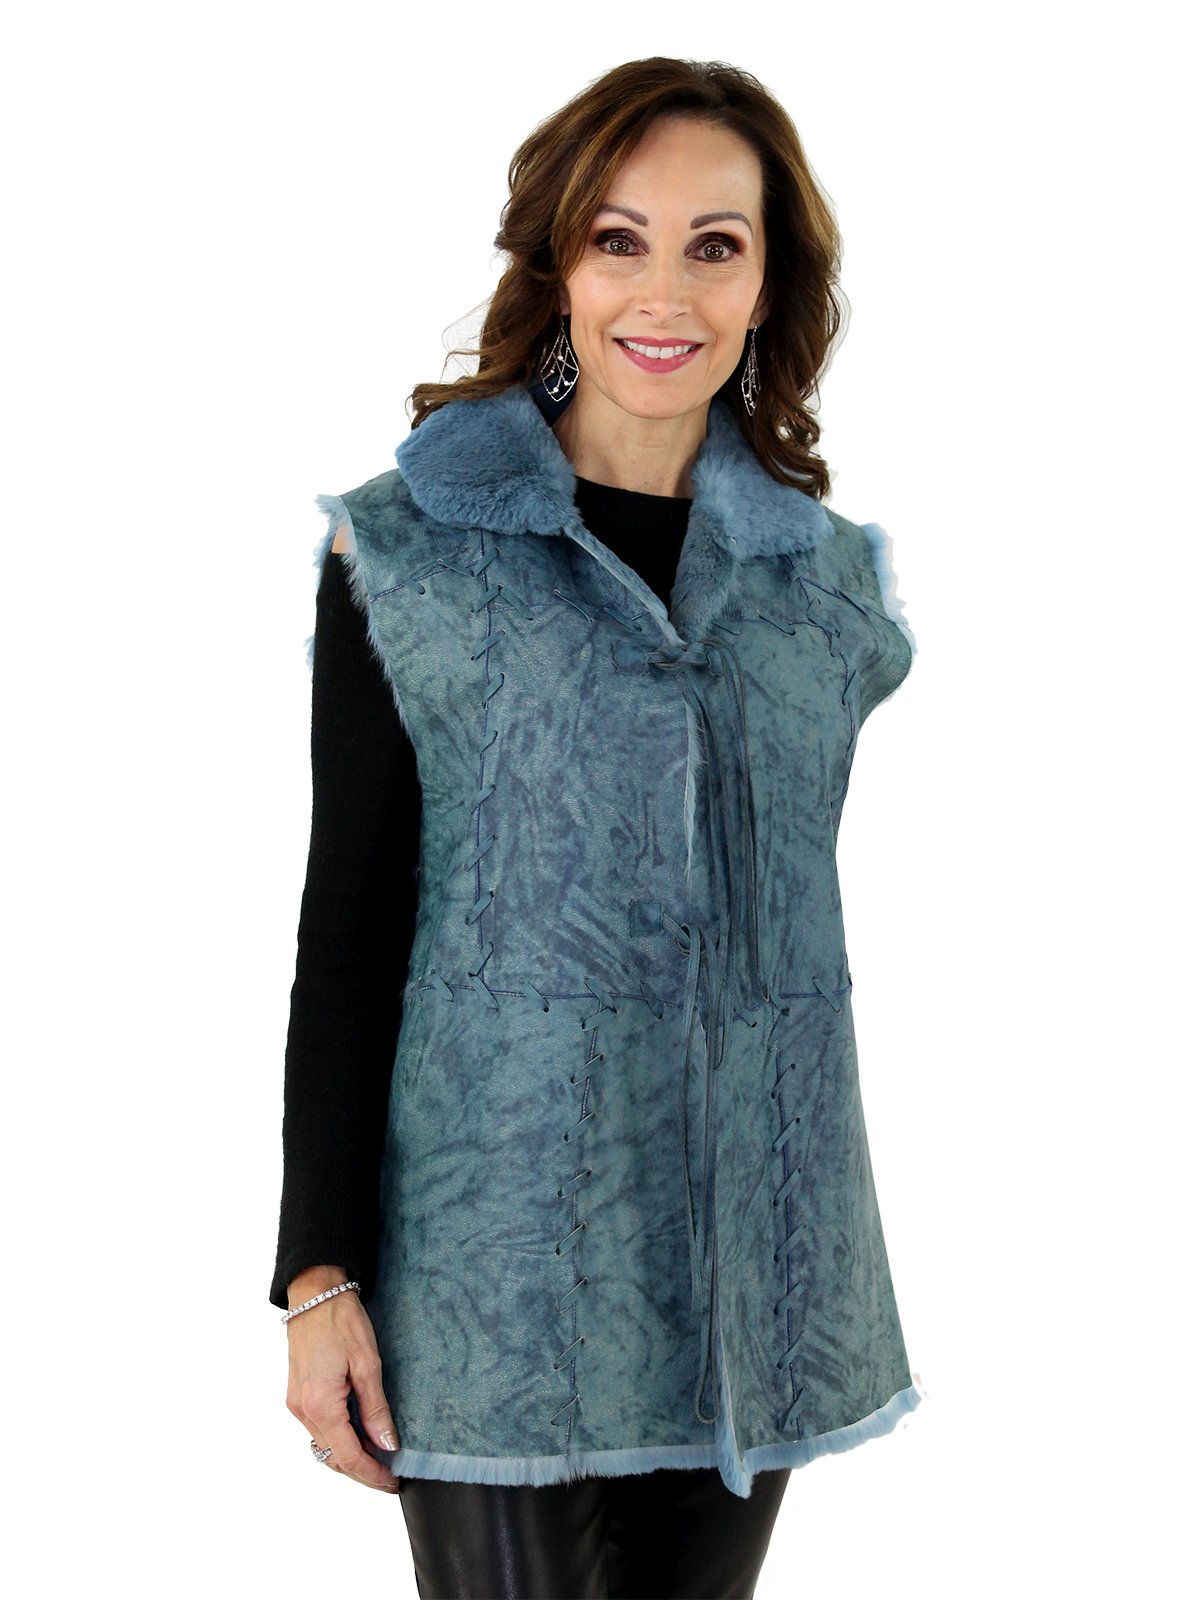 Woman's Blue Leather Vest with Rabbit Fur Lining